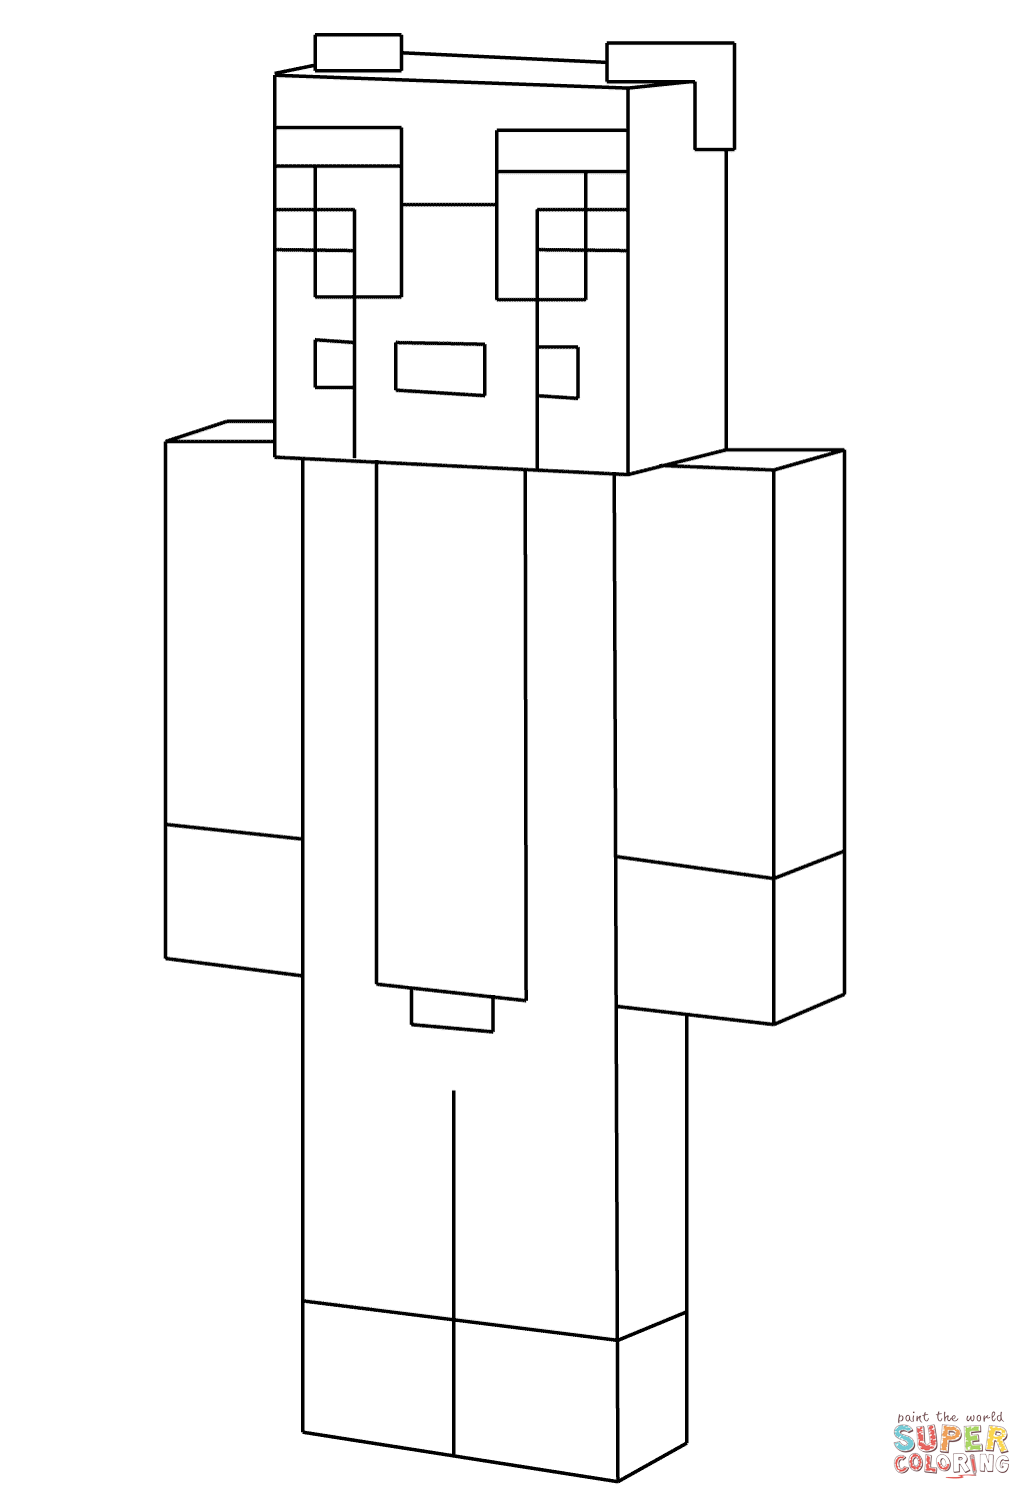 coloring pages minecraft stampylongnose halloween - photo#15